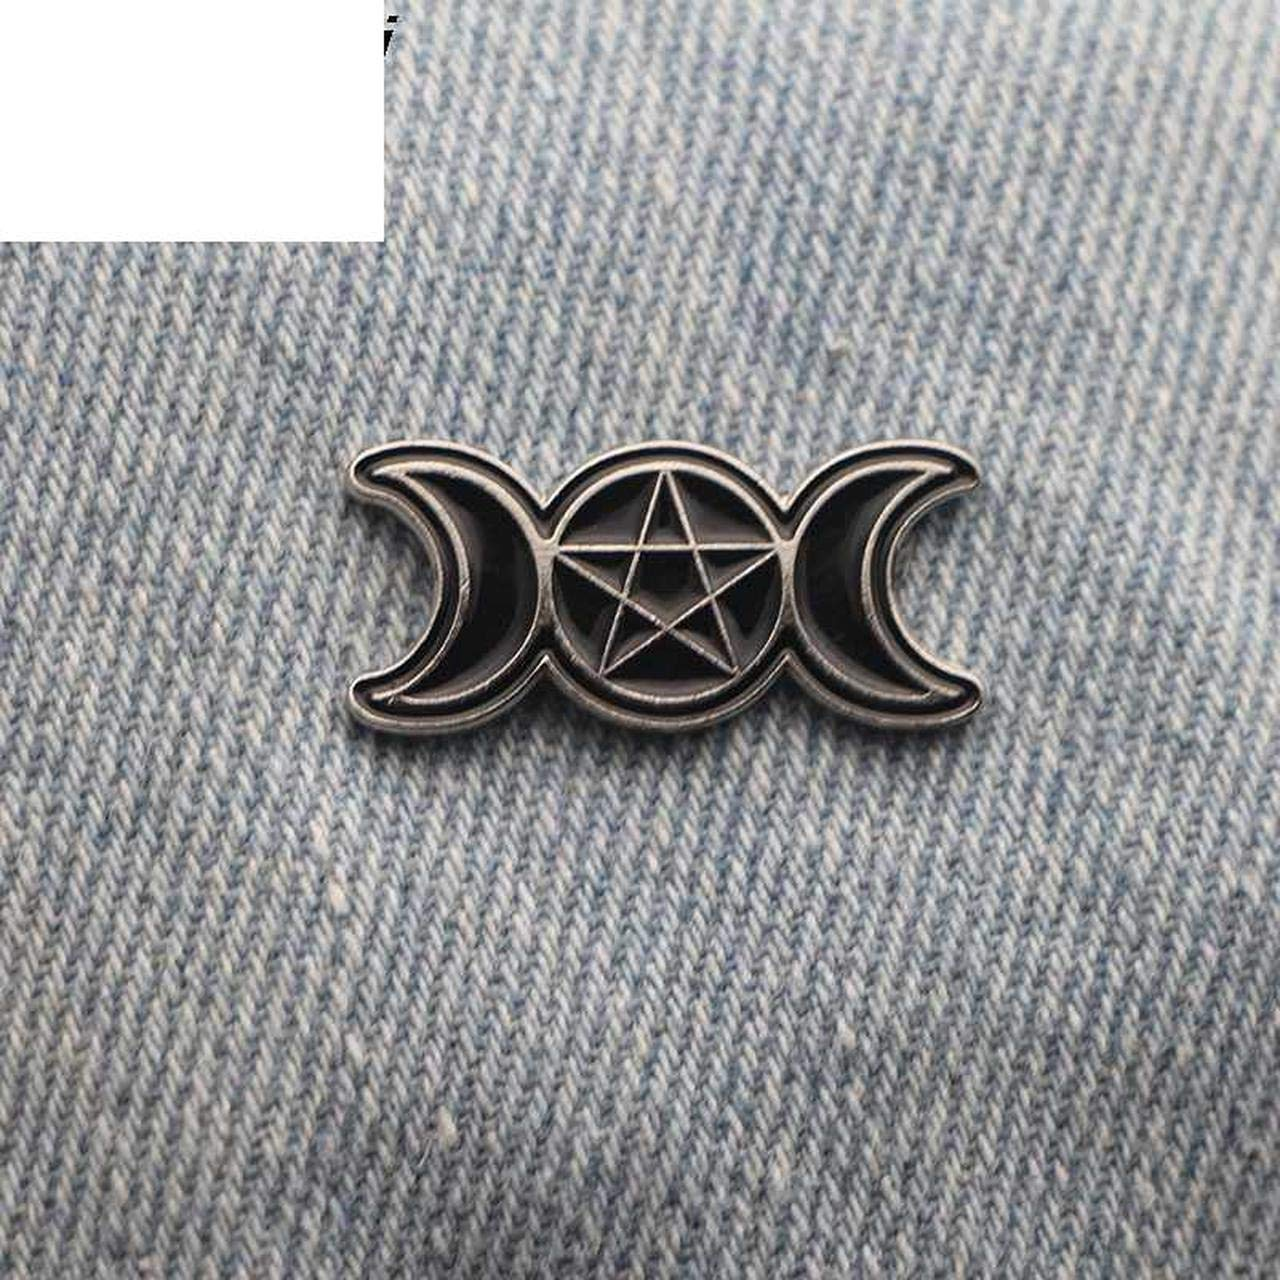 P2254Triple Moon Goddess Wicca Pentagram Magic Amulet Metal Enamel Badge Emblem Brooch Pin Corsage Pins Jewelry for Gifts